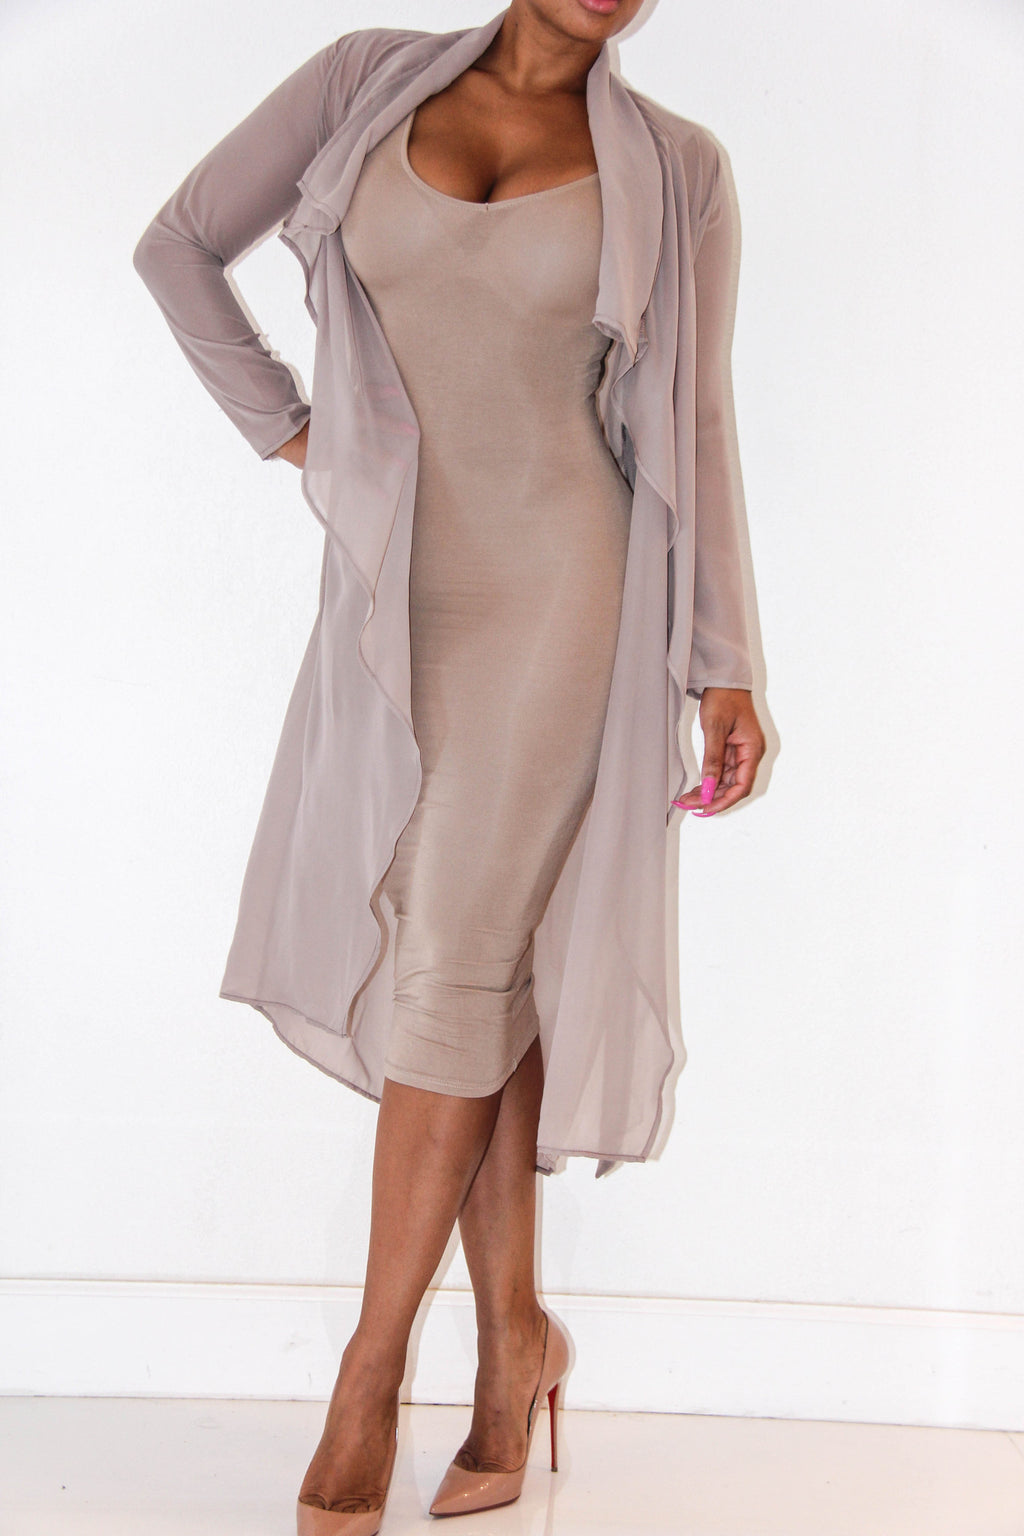 Nearly Nude Trench Coat, Tops - Style Dirty